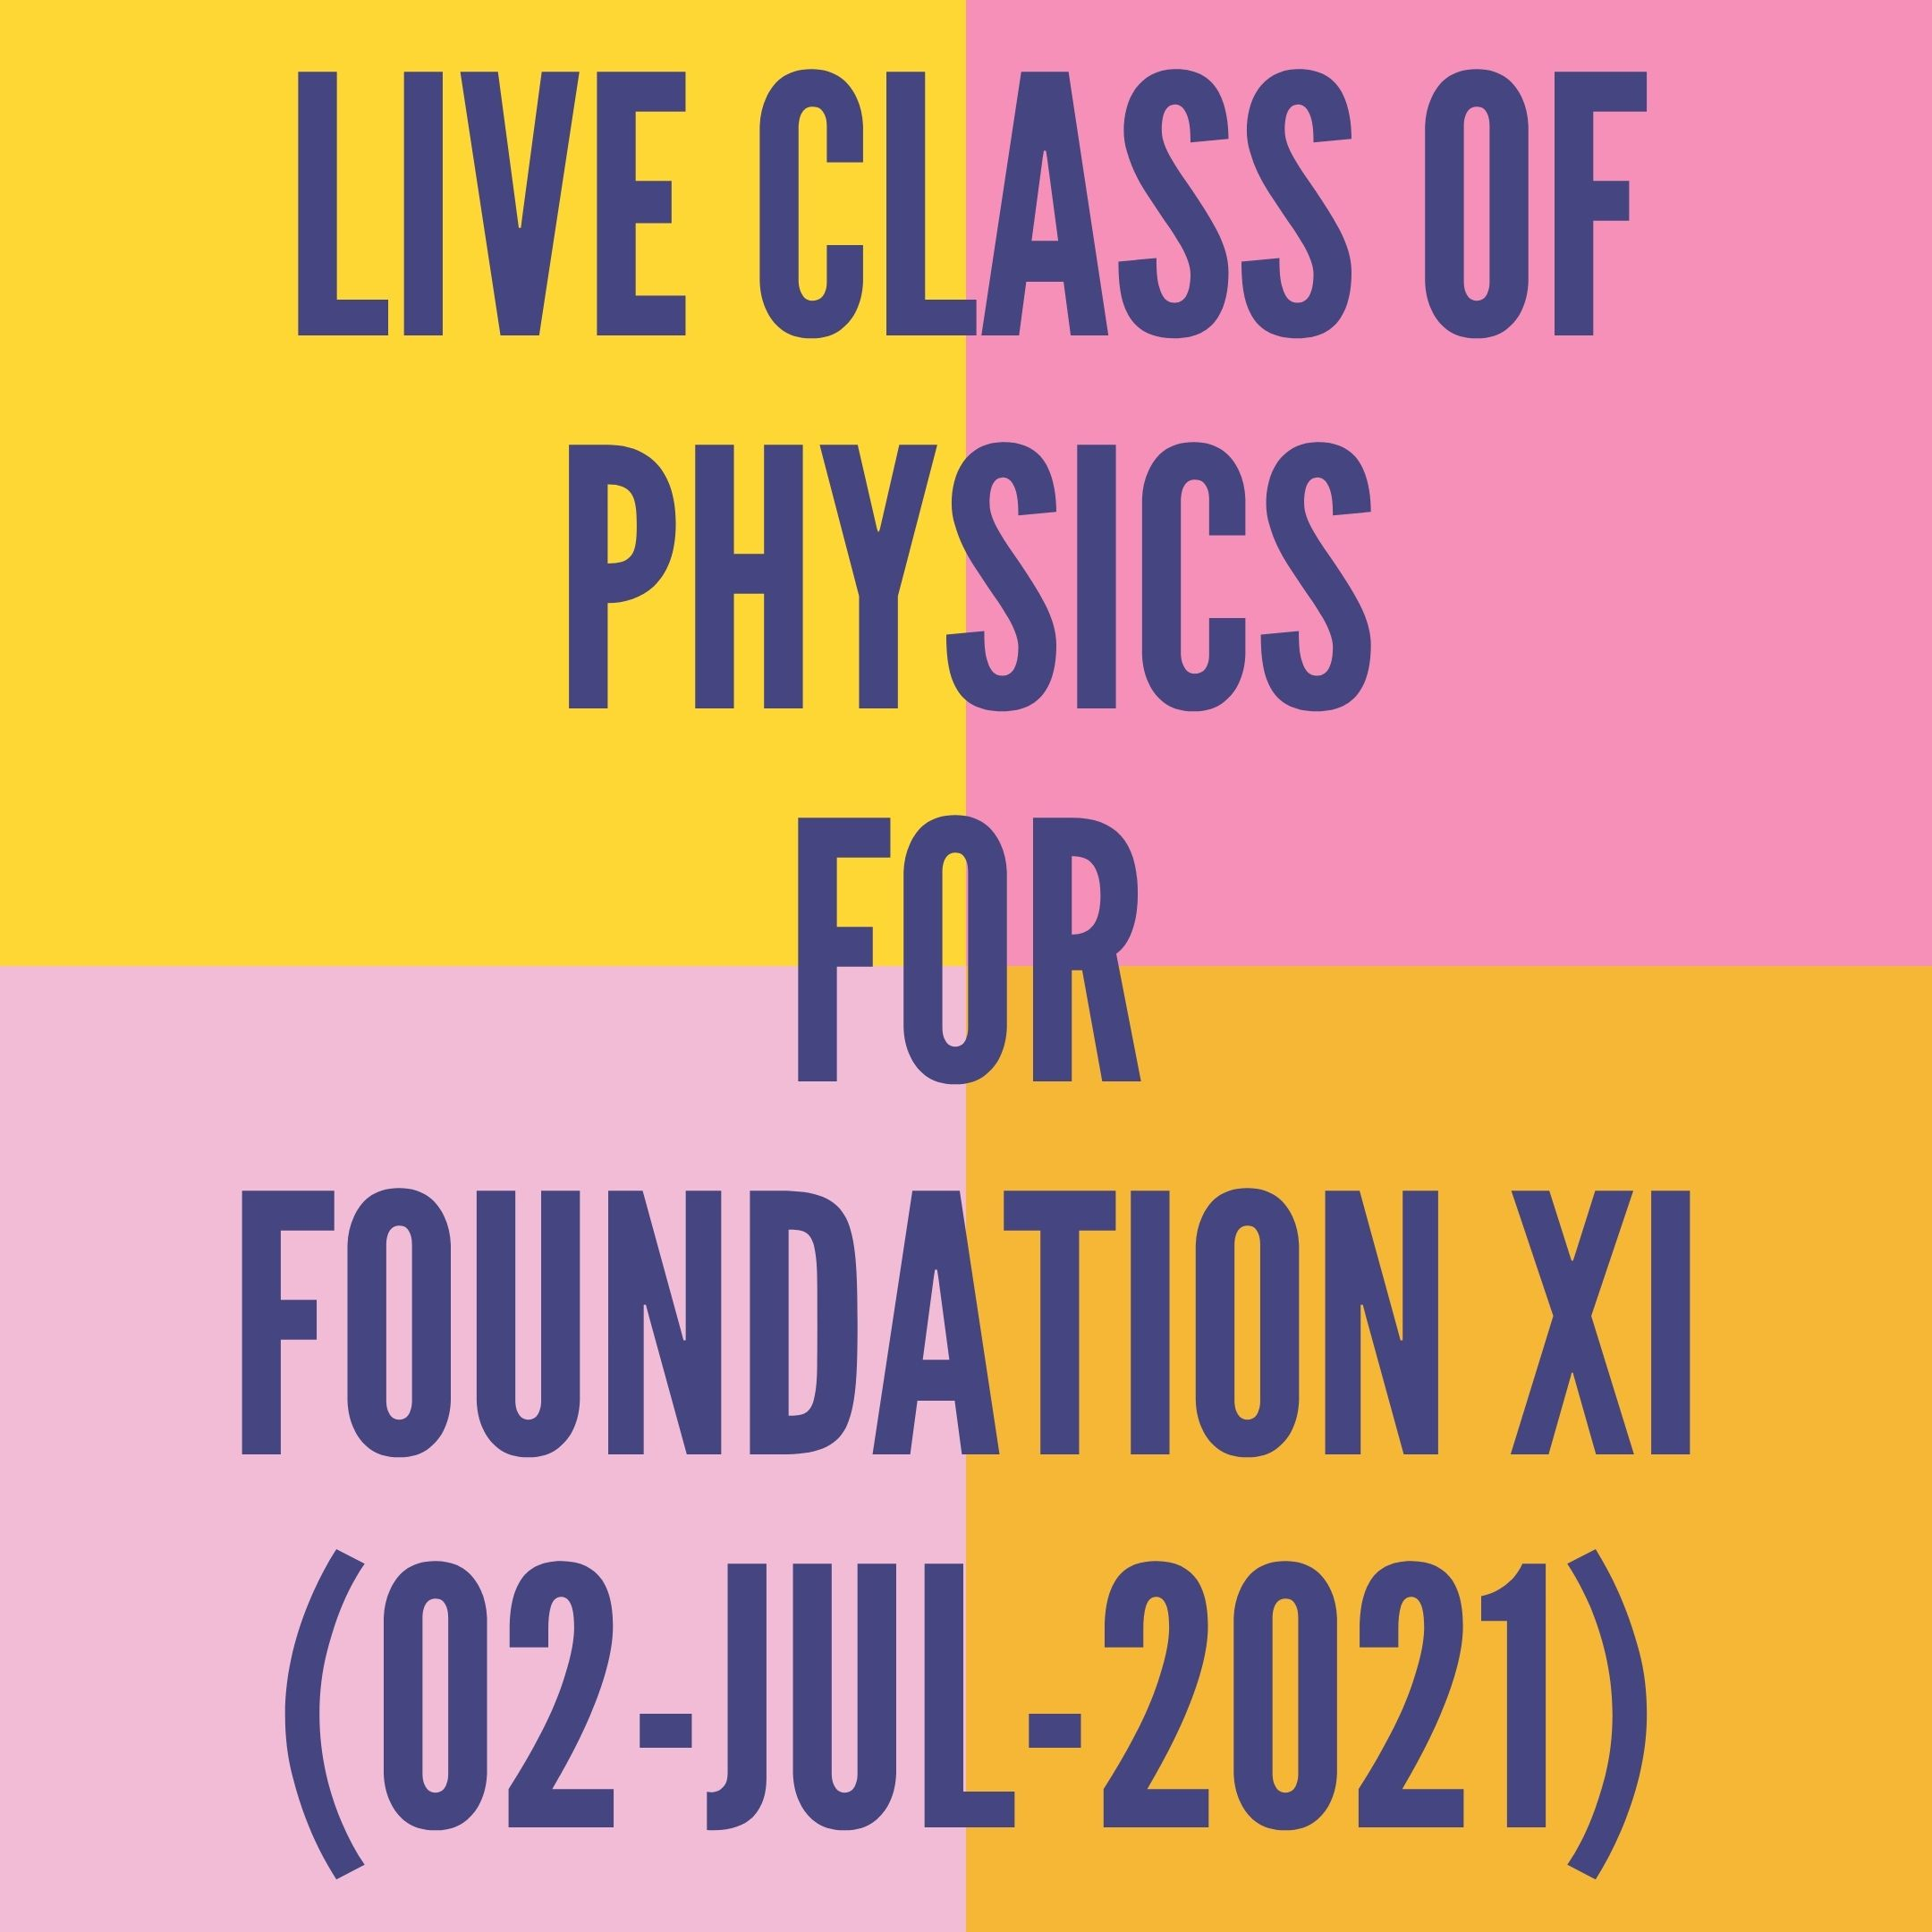 LIVE CLASS OF PHYSICS FOR FOUNDATION XI (02-JUL-2021) APPLIED MATHS